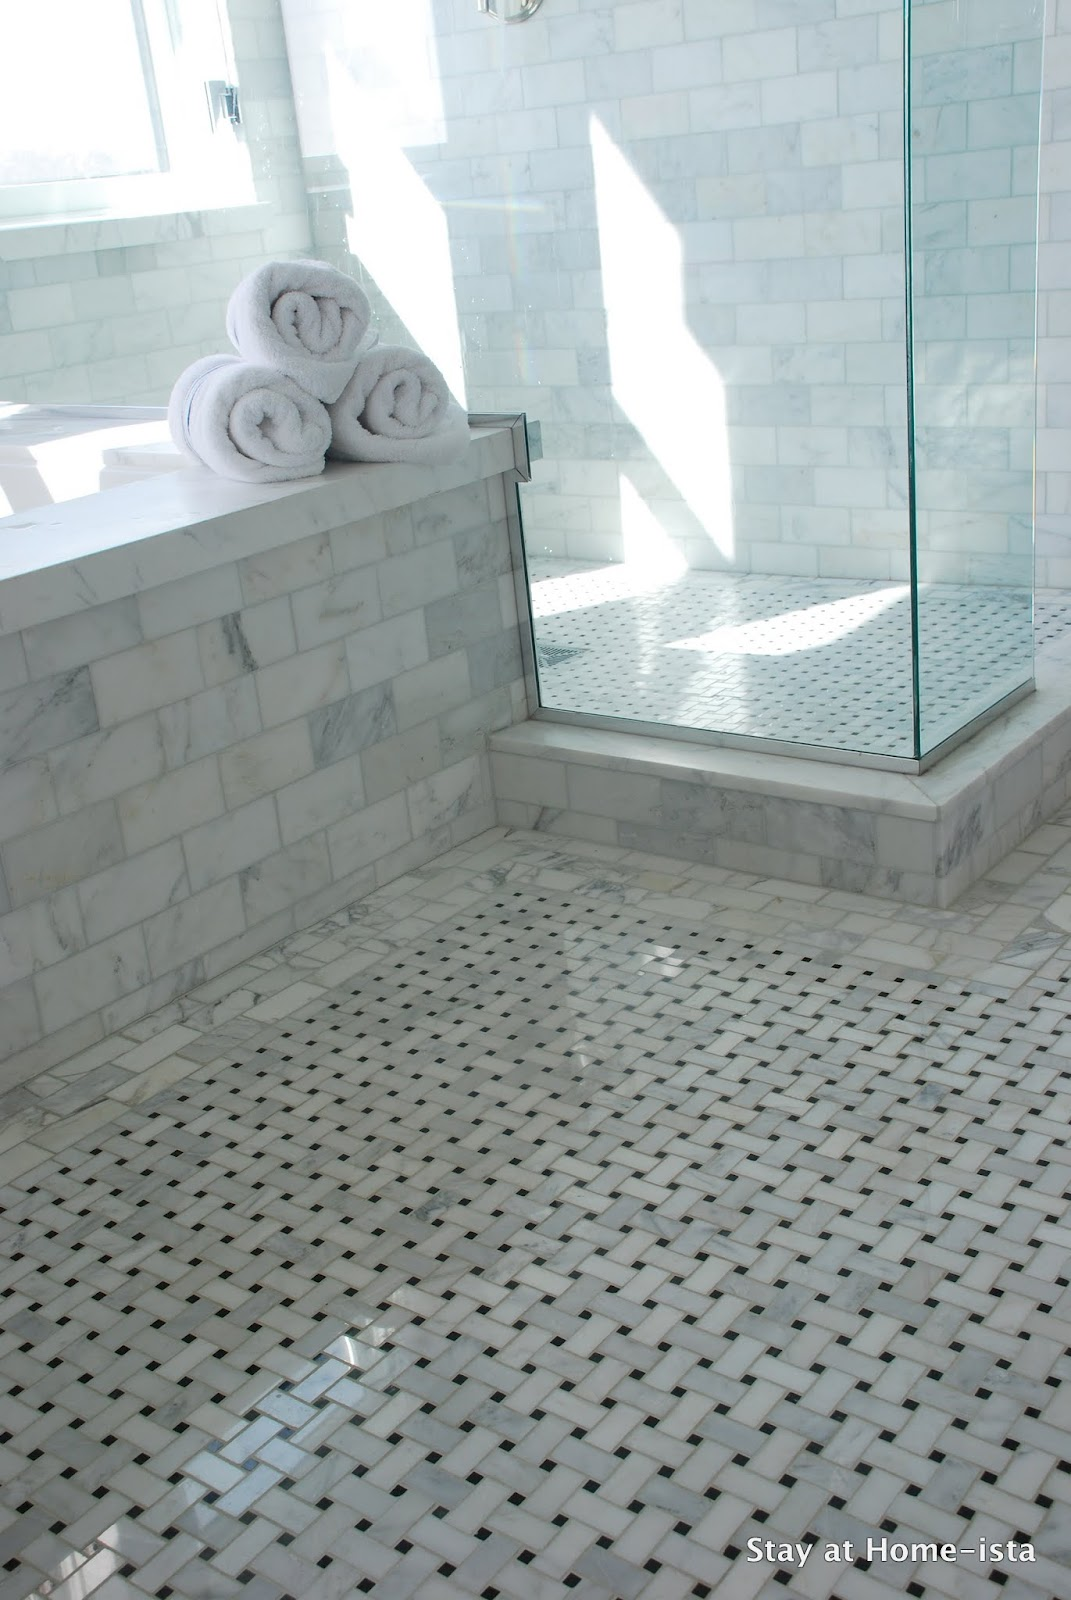 30 great pictures and ideas of fashioned bathroom tile 19394